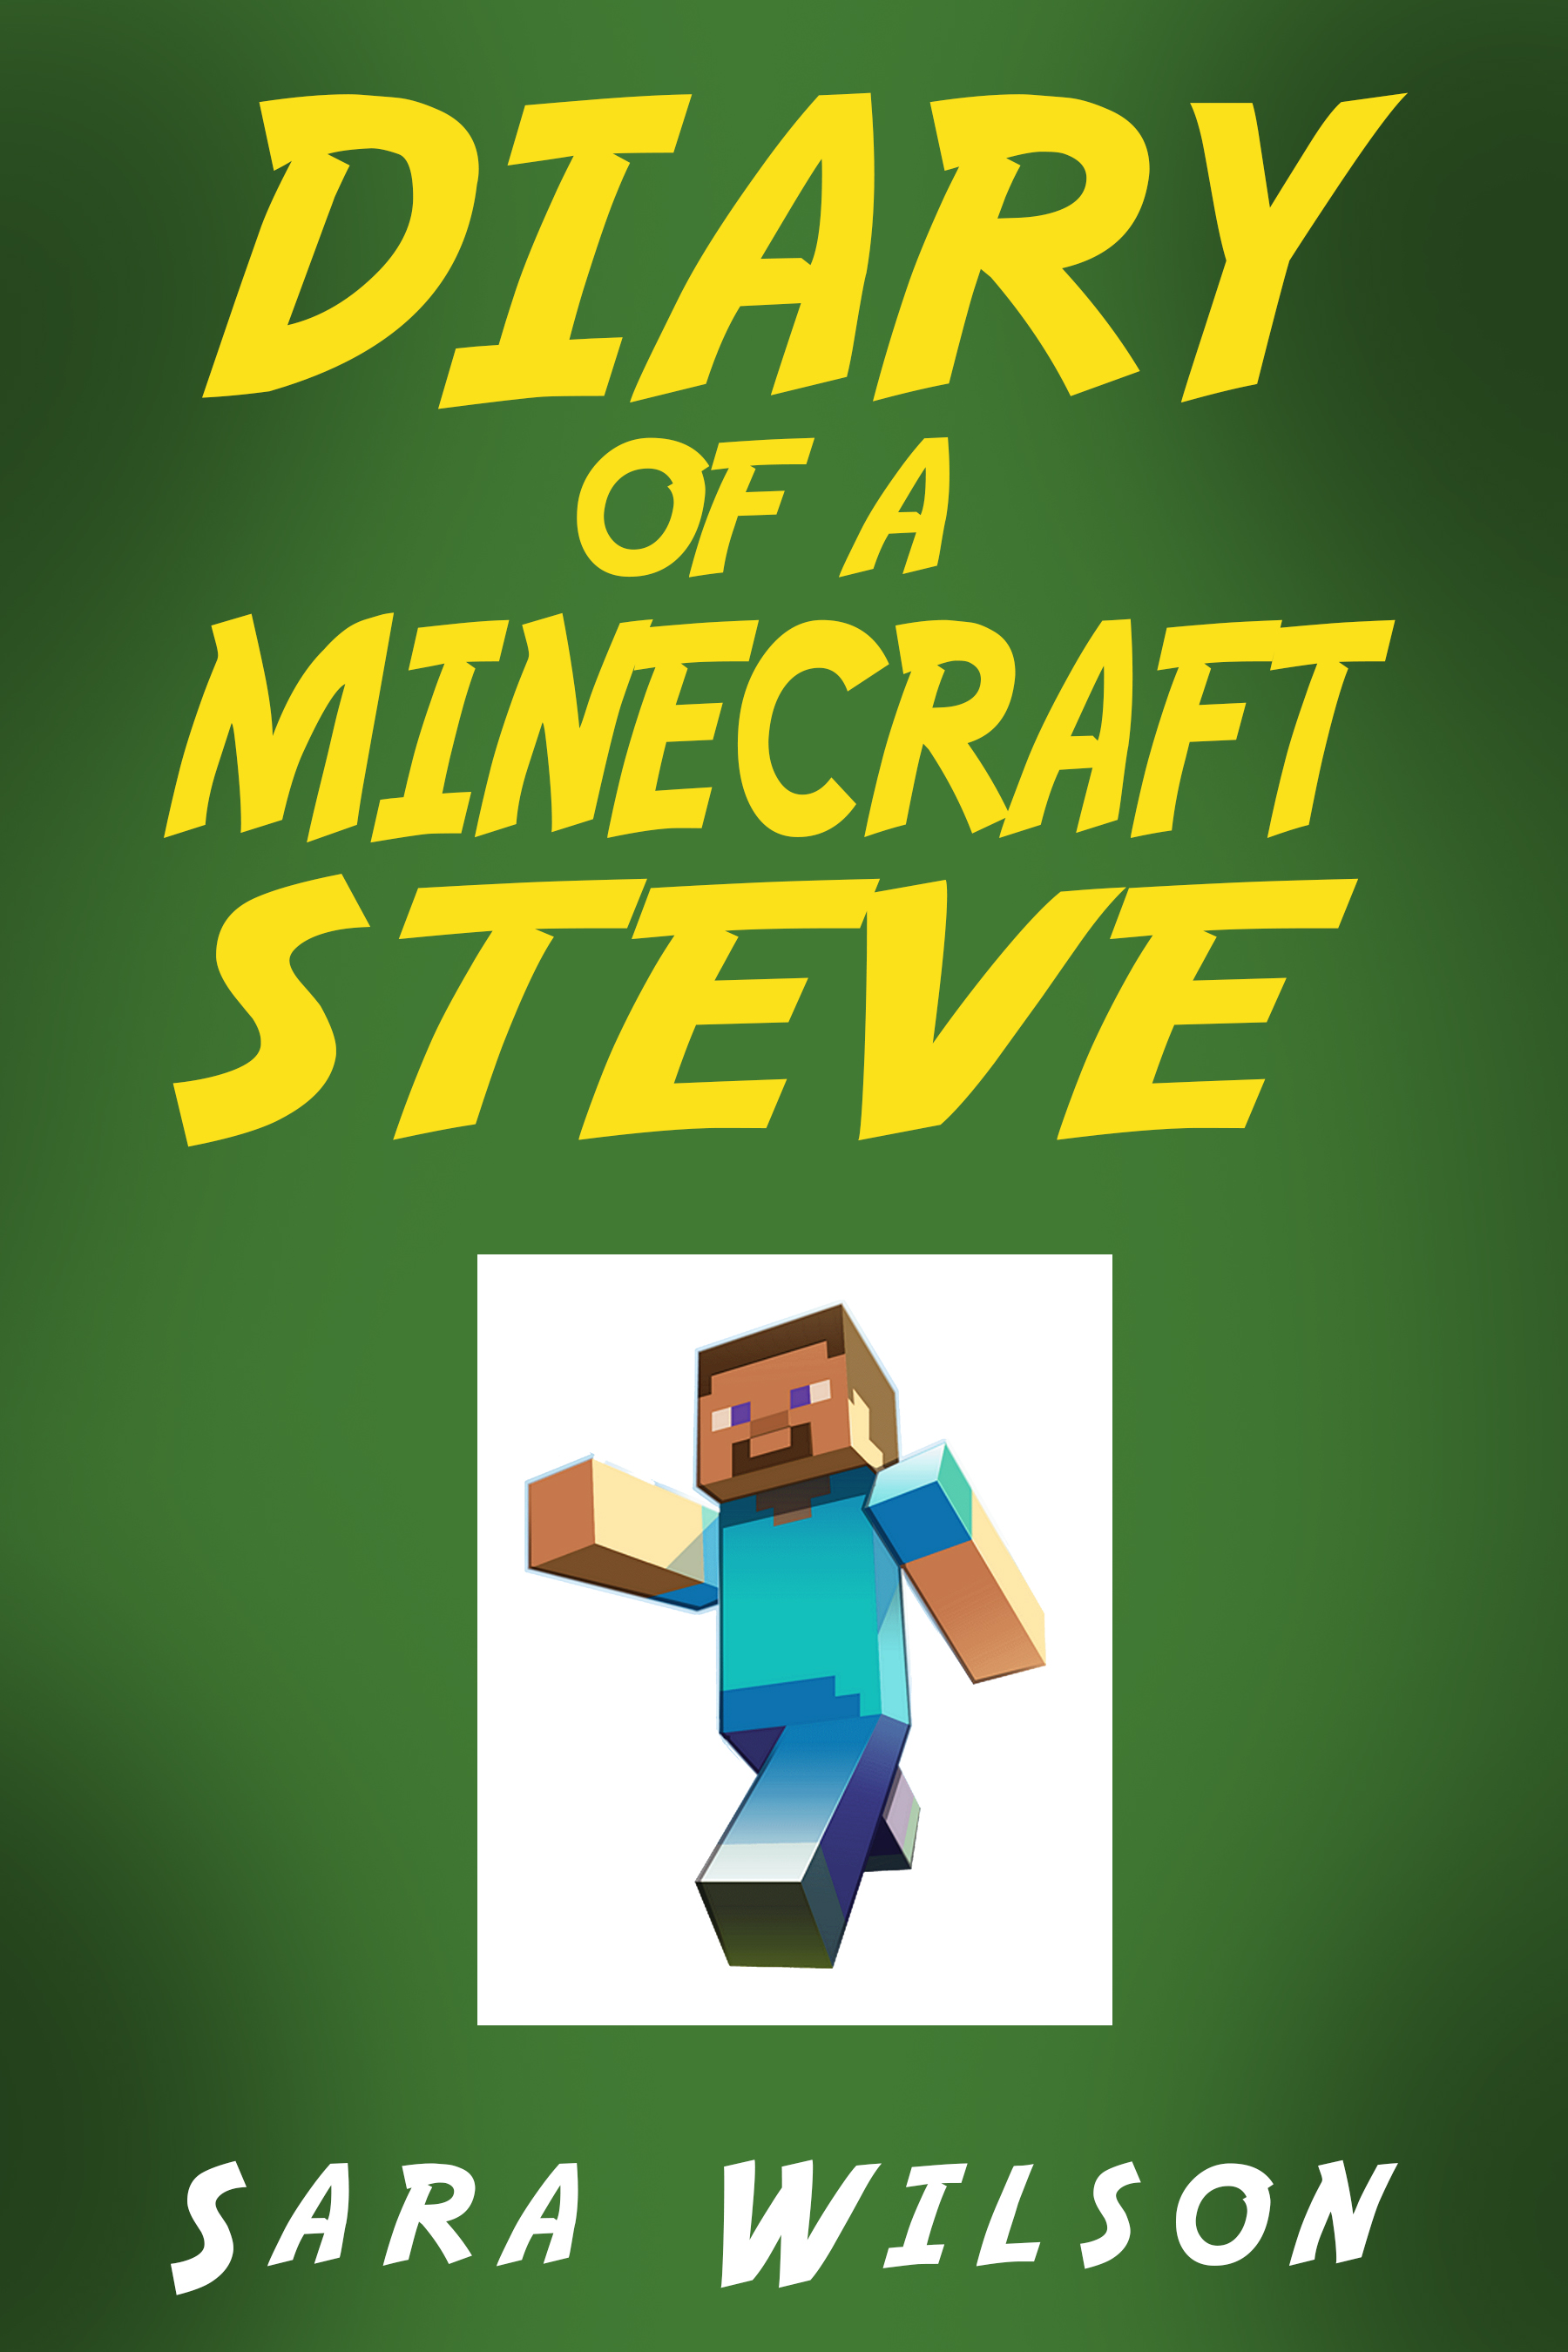 Diary of a Minecraft Steve: The Amazing Minecraft World Told by a Hero  Minecraft Steve, an Ebook by Sara Wilson